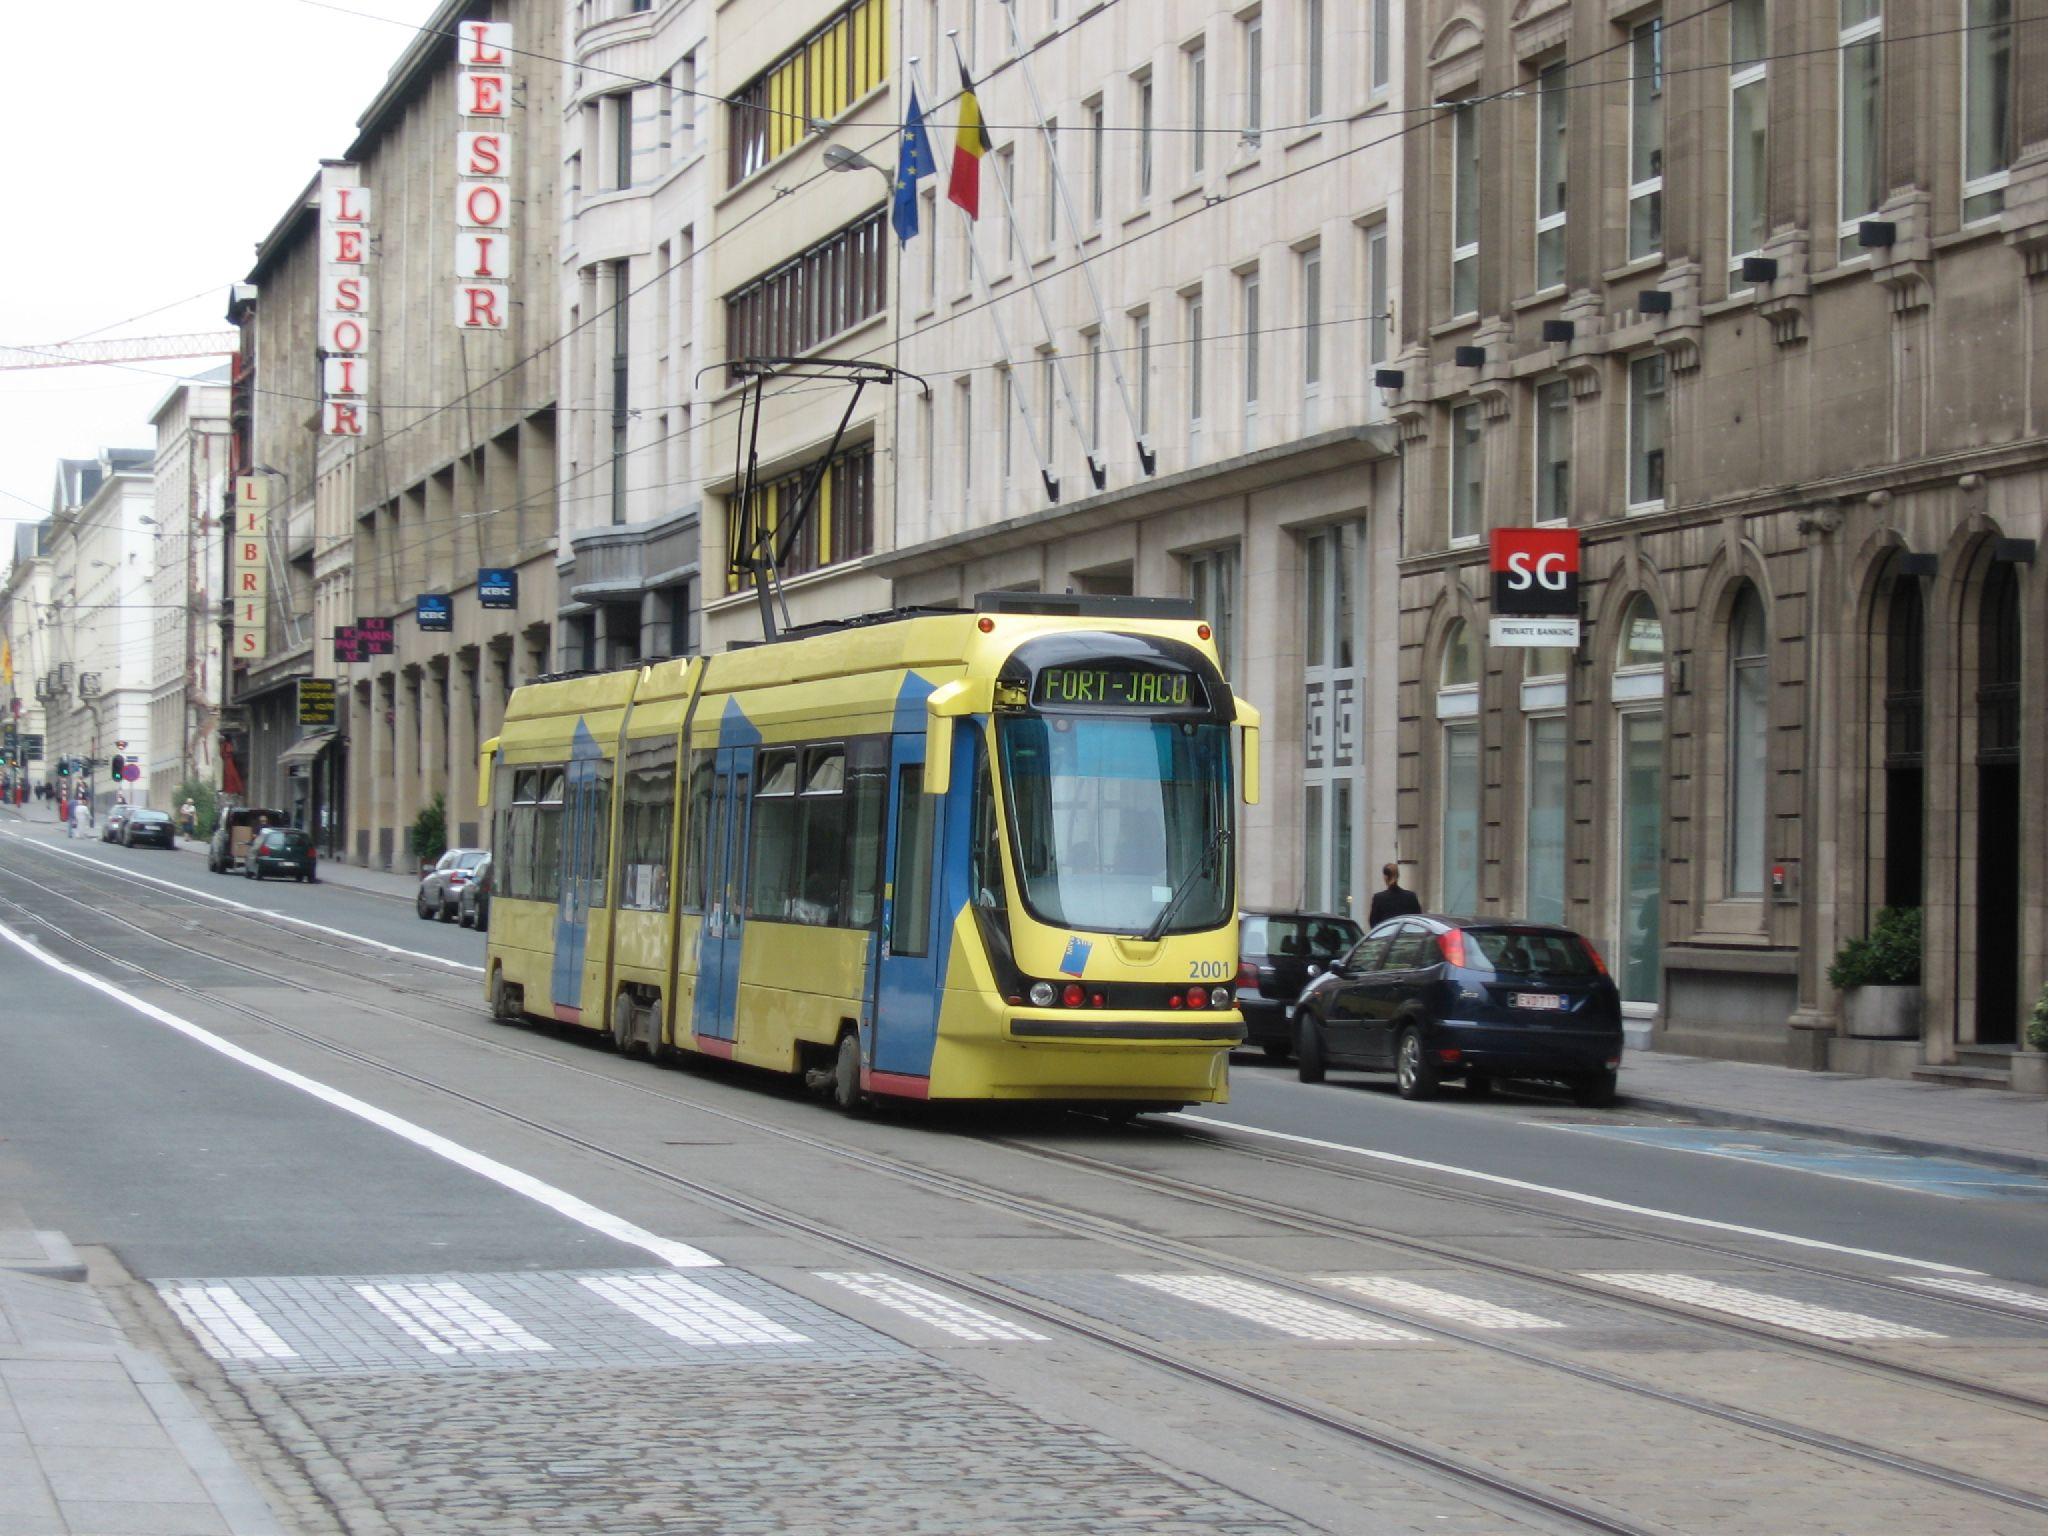 https://upload.wikimedia.org/wikipedia/commons/a/a5/Tram_in_brussel.jpg?uselang=fr